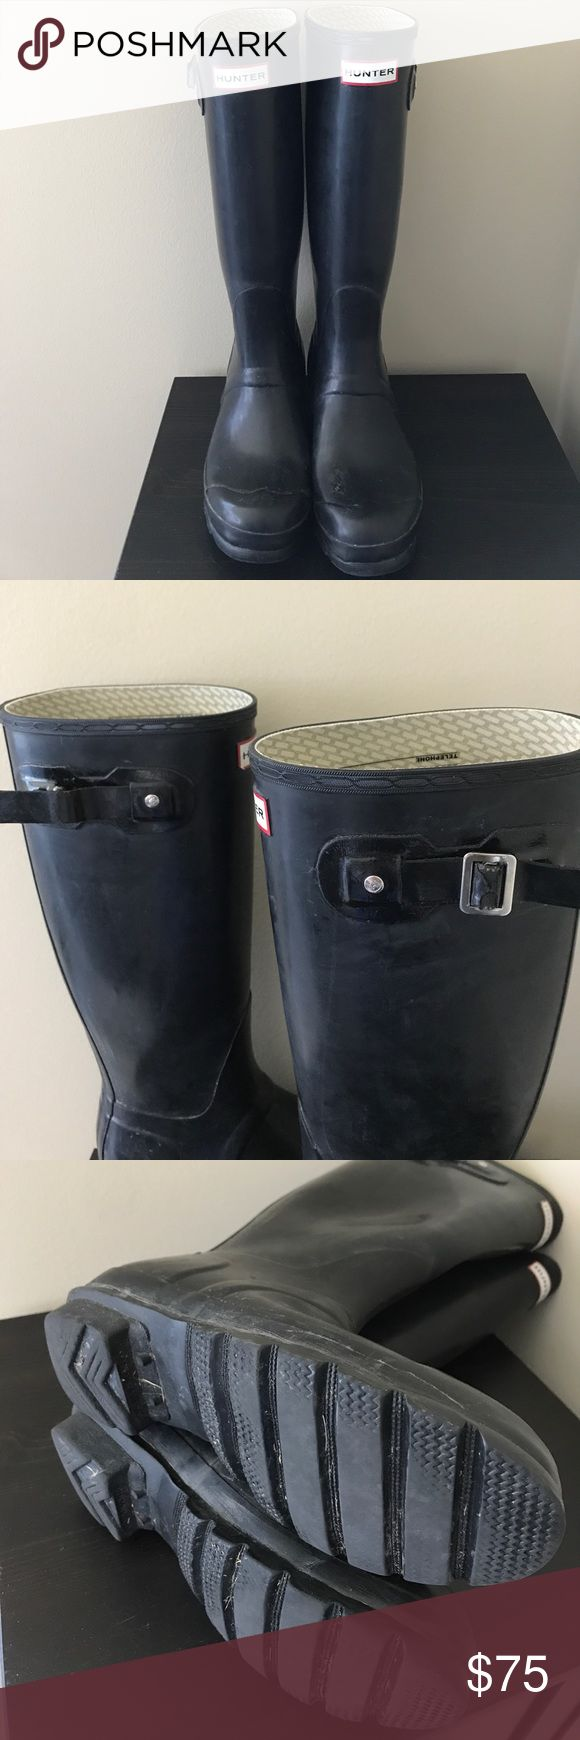 Original tall Hunter rain boots black gloss Black Hunter Boots Women's Size 7, Men Size 6. Missing a buckle on the right boot that I do have and will send with order (only reason that I'm selling for cheap). It could easily be glued on! Other than that, near perfect condition! The inside is still in tact completely and the soles are 100% good with no holes! Will Include boot socks! Hunter Shoes Winter & Rain Boots